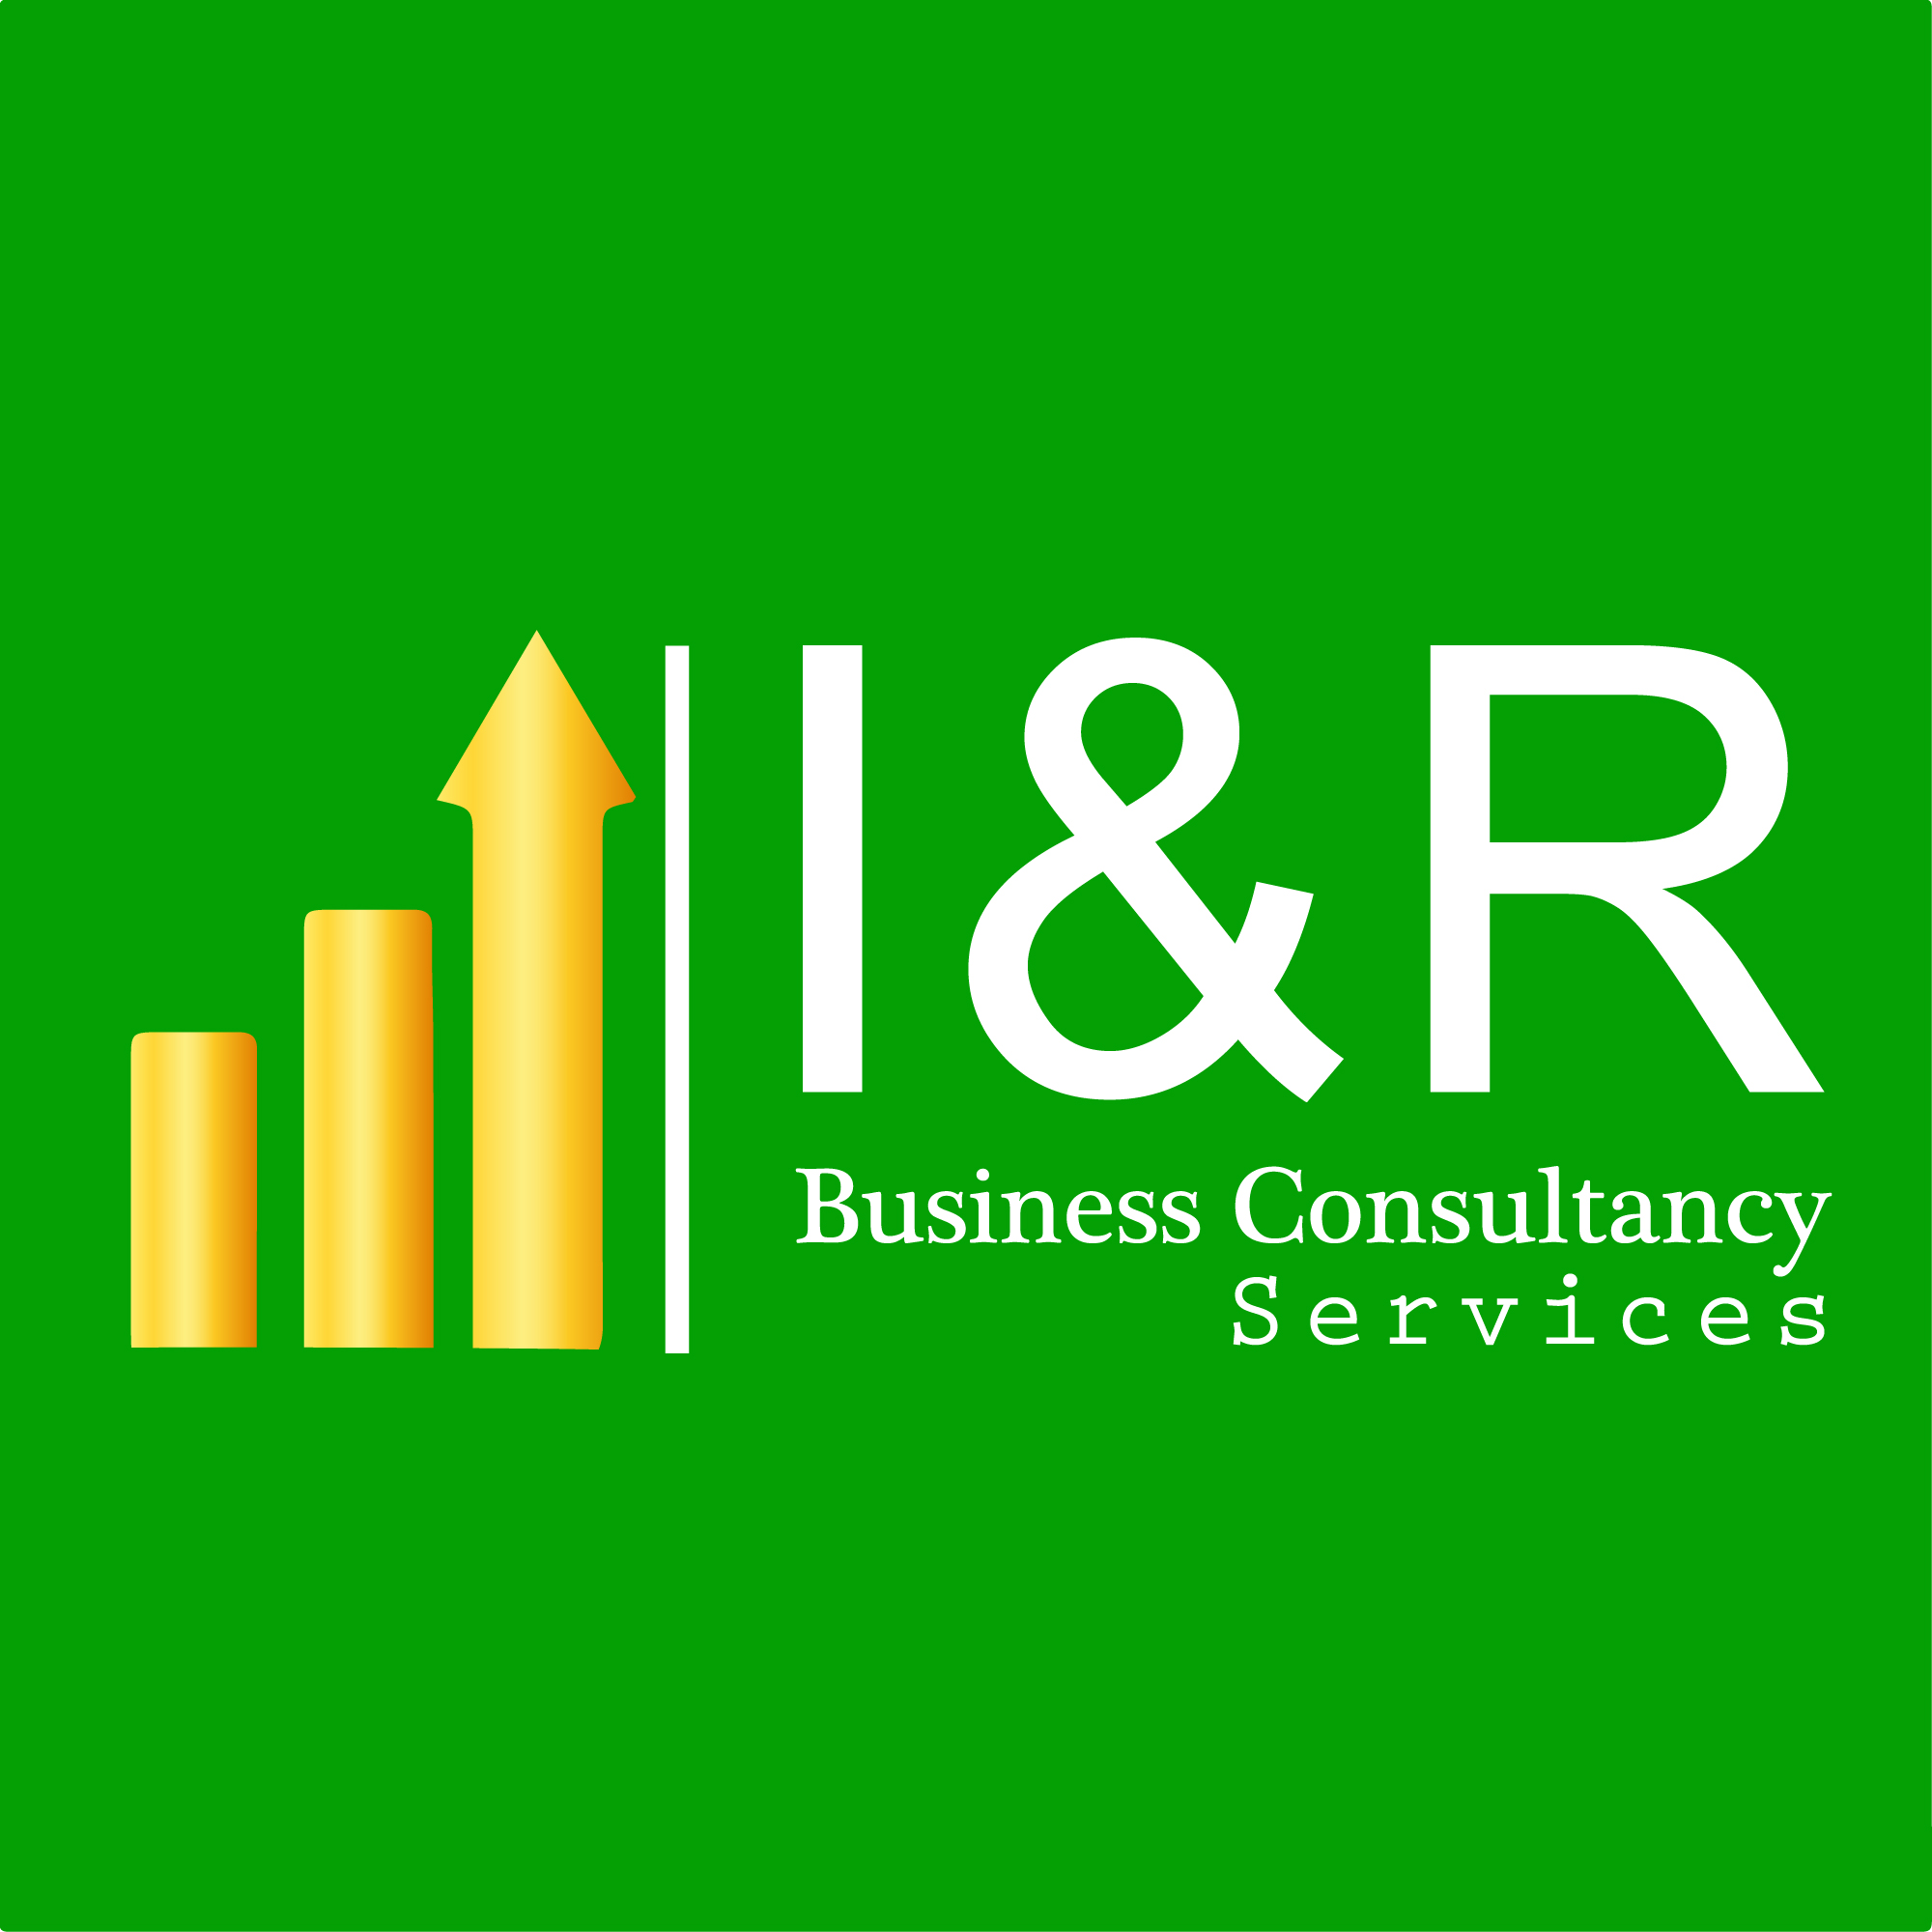 I & R Business Consultancy Services